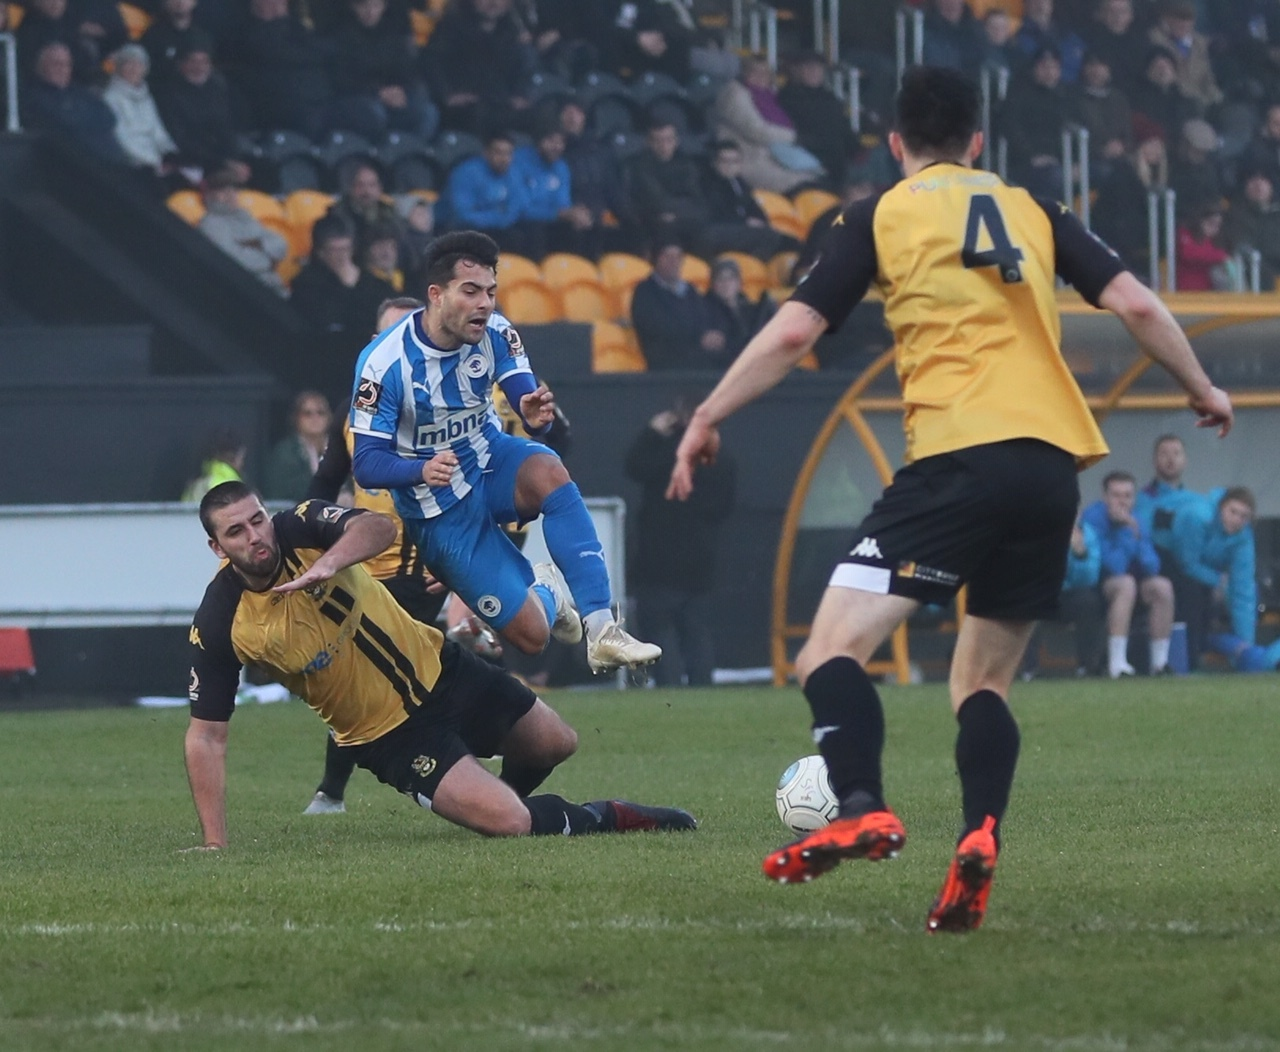 Chester lose to Southport in a Boxing Day disappointment at Haig Avenue